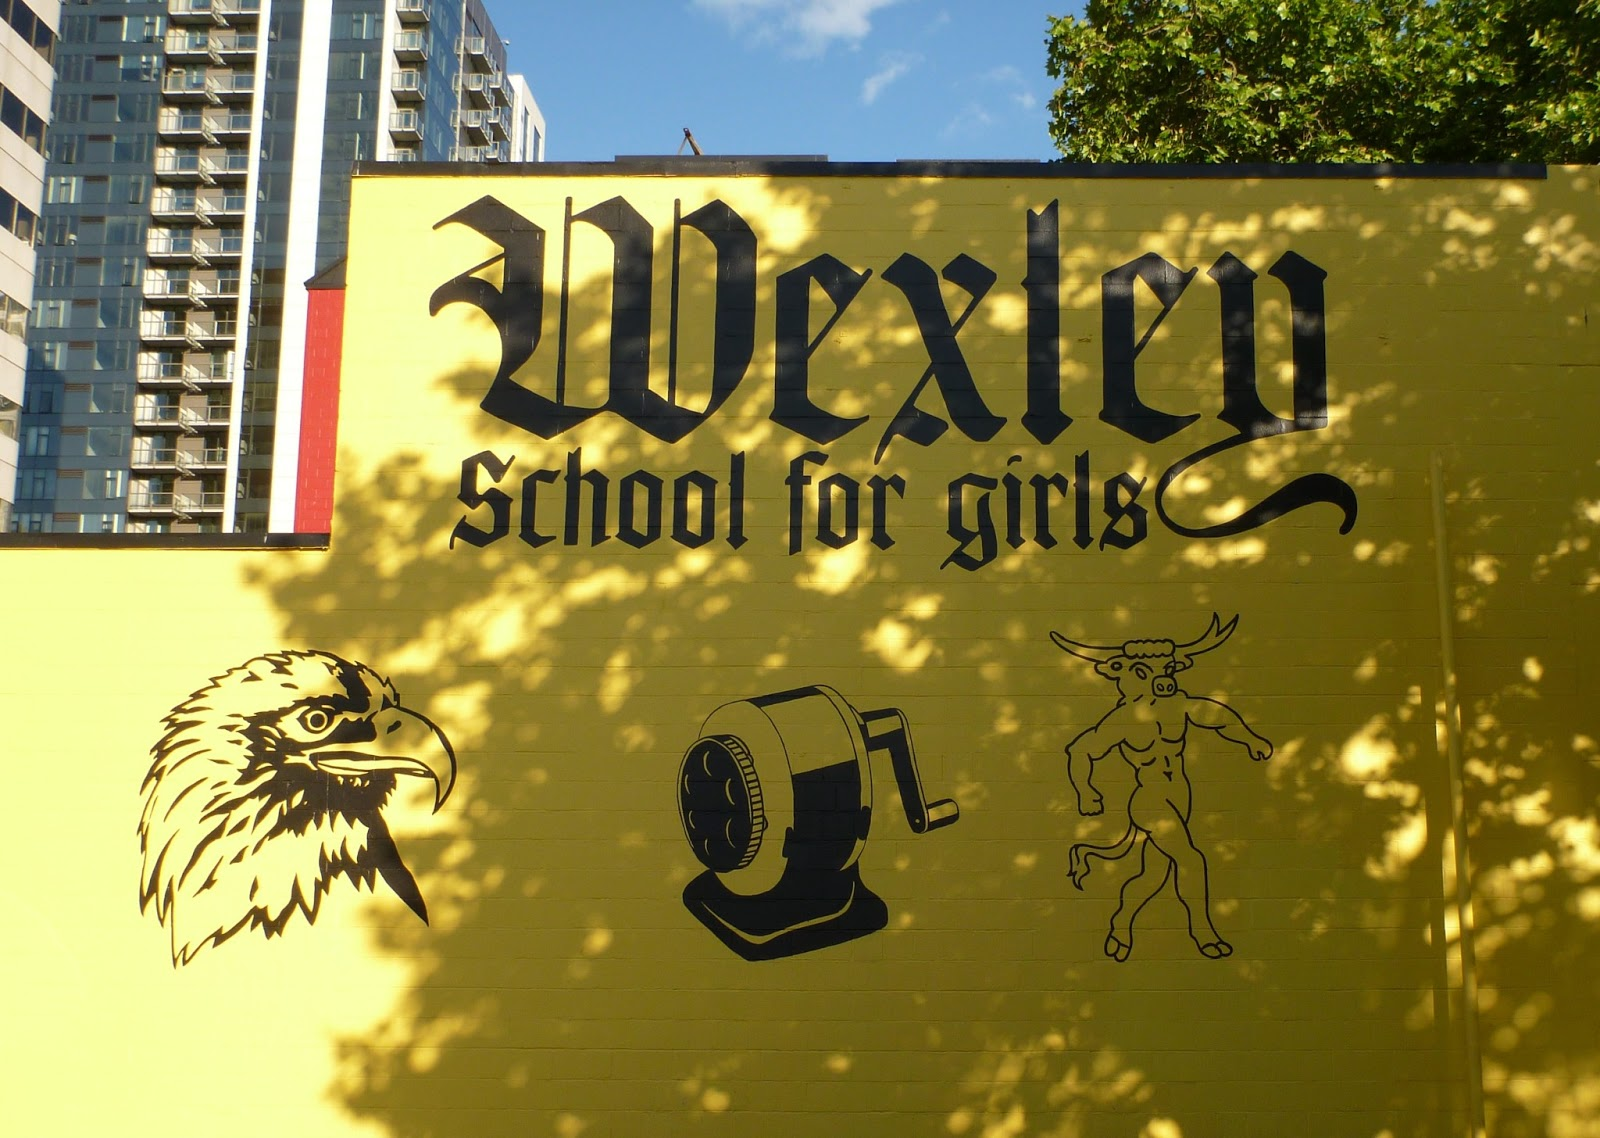 TravelMarx: Wexley School for Girls – Yellow Wall and Back Alley ...